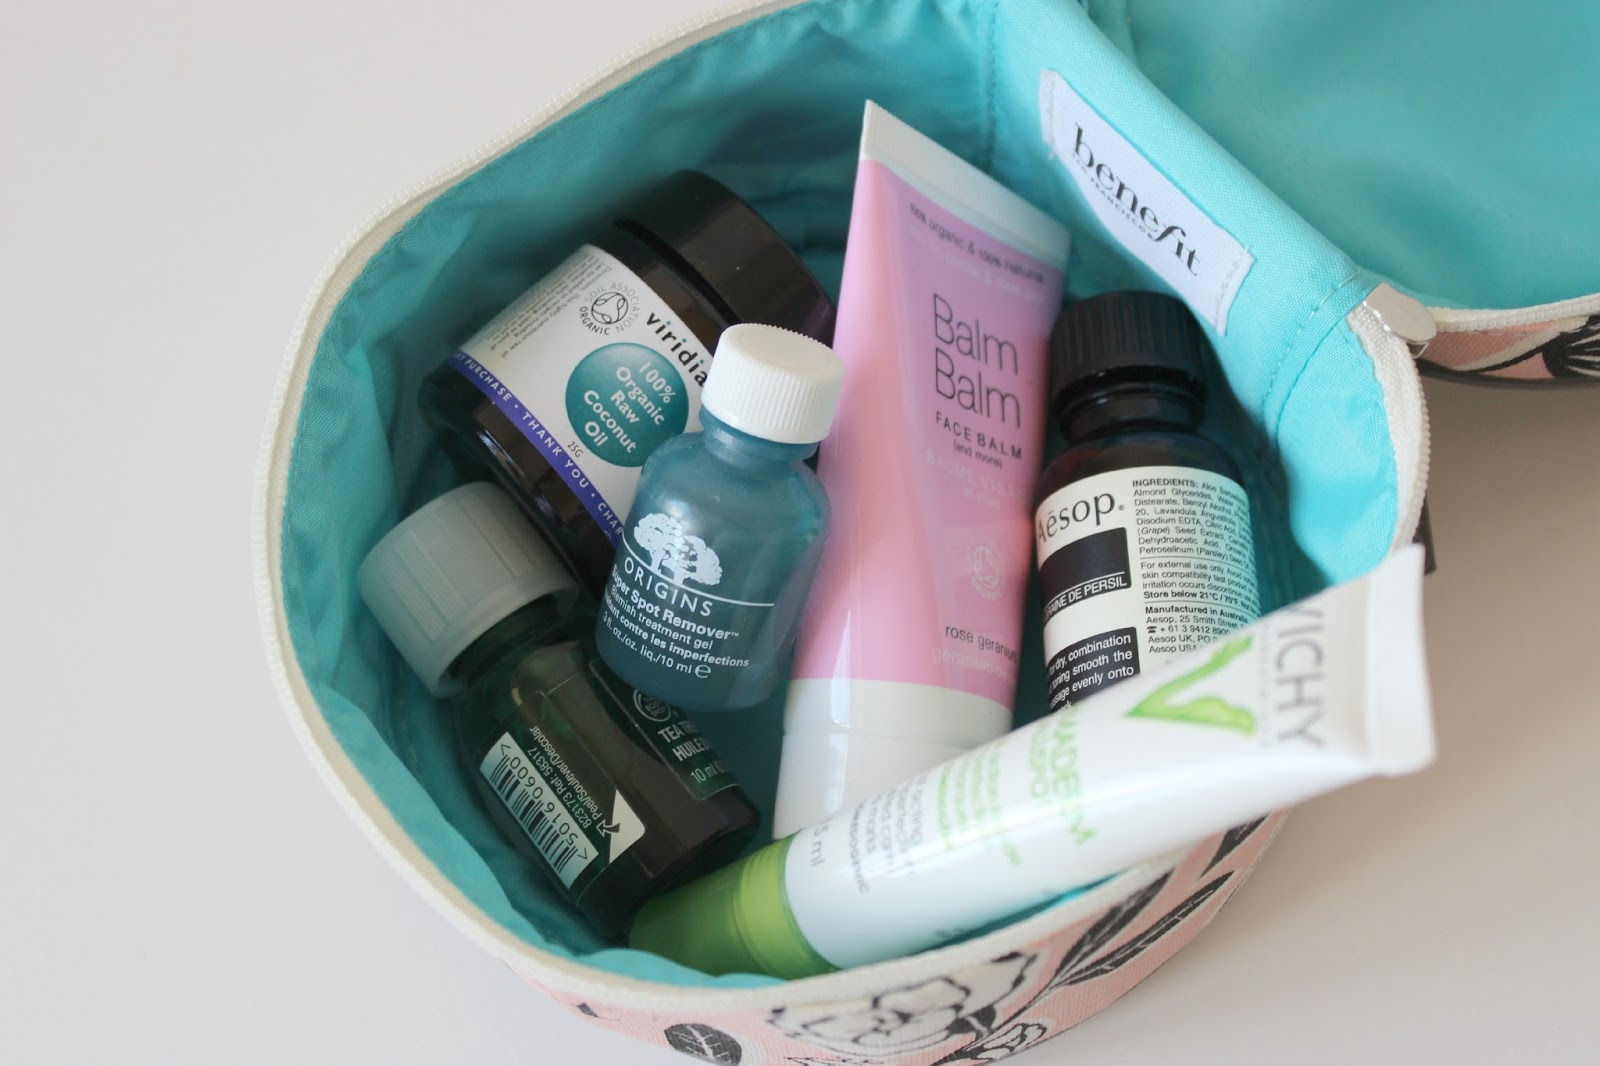 A picture of the EMERGENCY SKIN RESCUE KIT